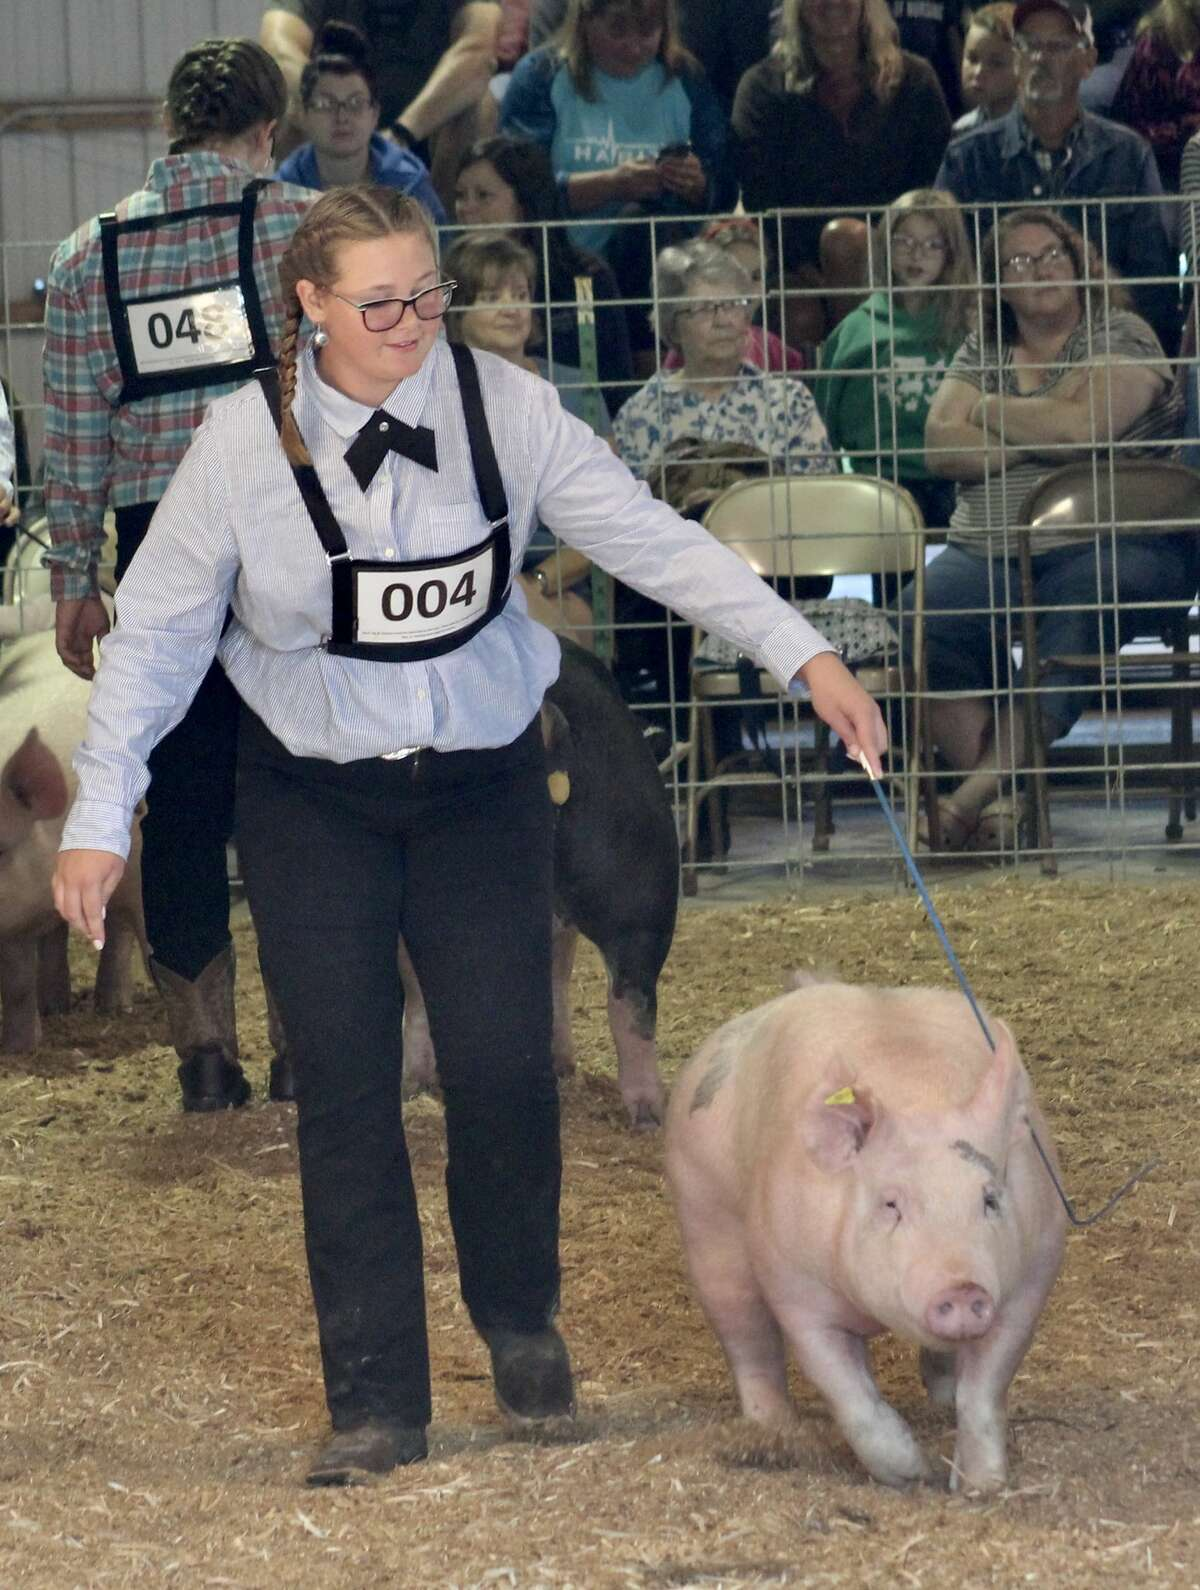 Eighth-grader Anna Bradford competed in the 4-H swine show on Tuesday at the Manistee County Fair, winning first place for the juniors division.